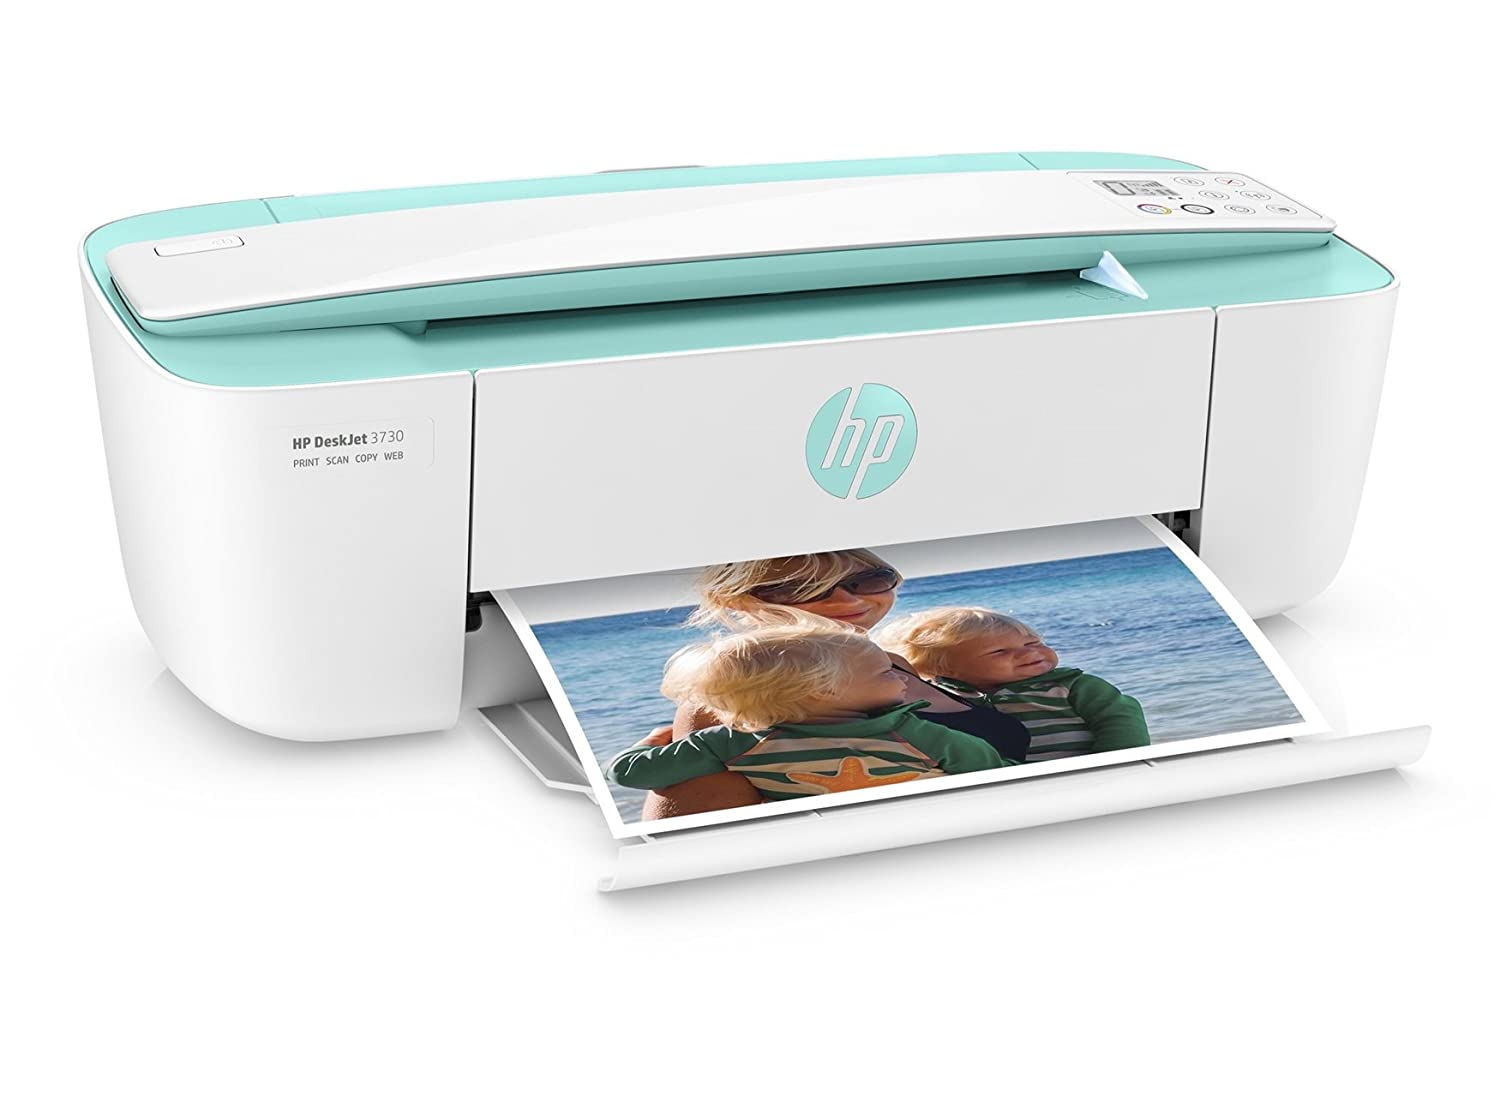 HP DeskJet 3730 - DeskJet 3730 All-in-One Printer: Amazon.es ...